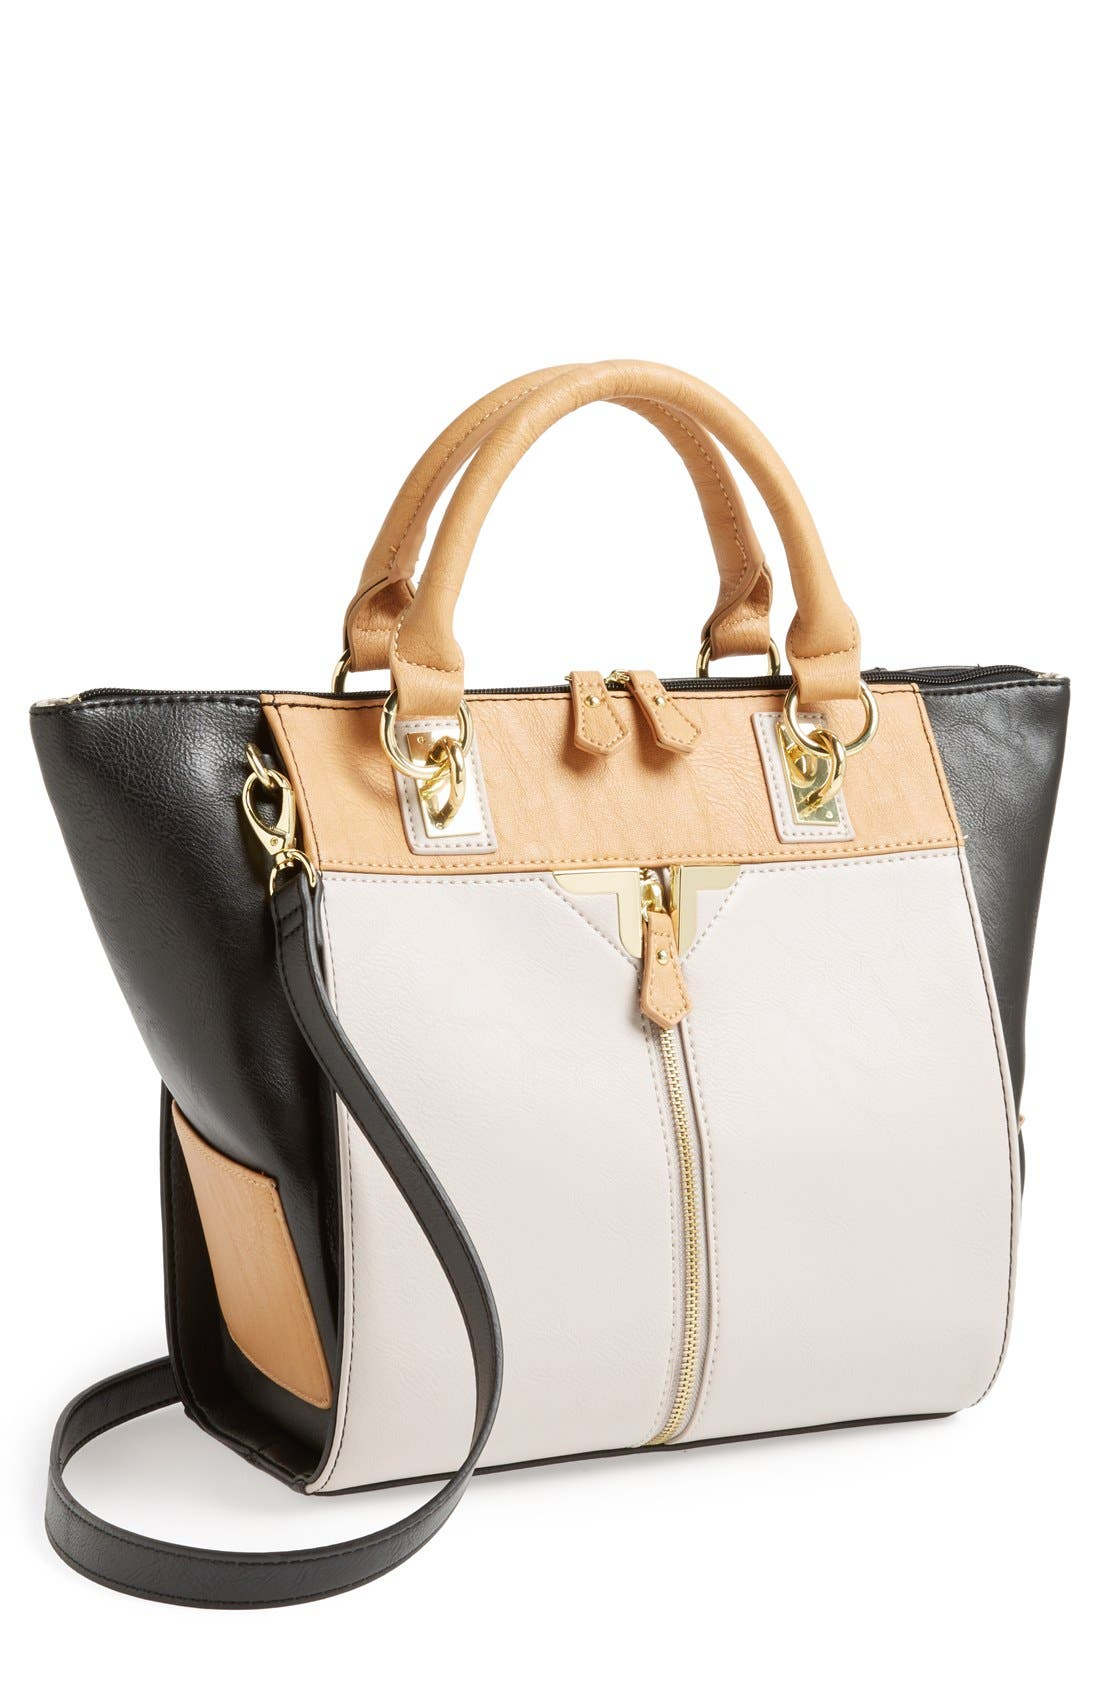 Main Image - Danielle Nicole 'Alexa' Faux Leather Satchel